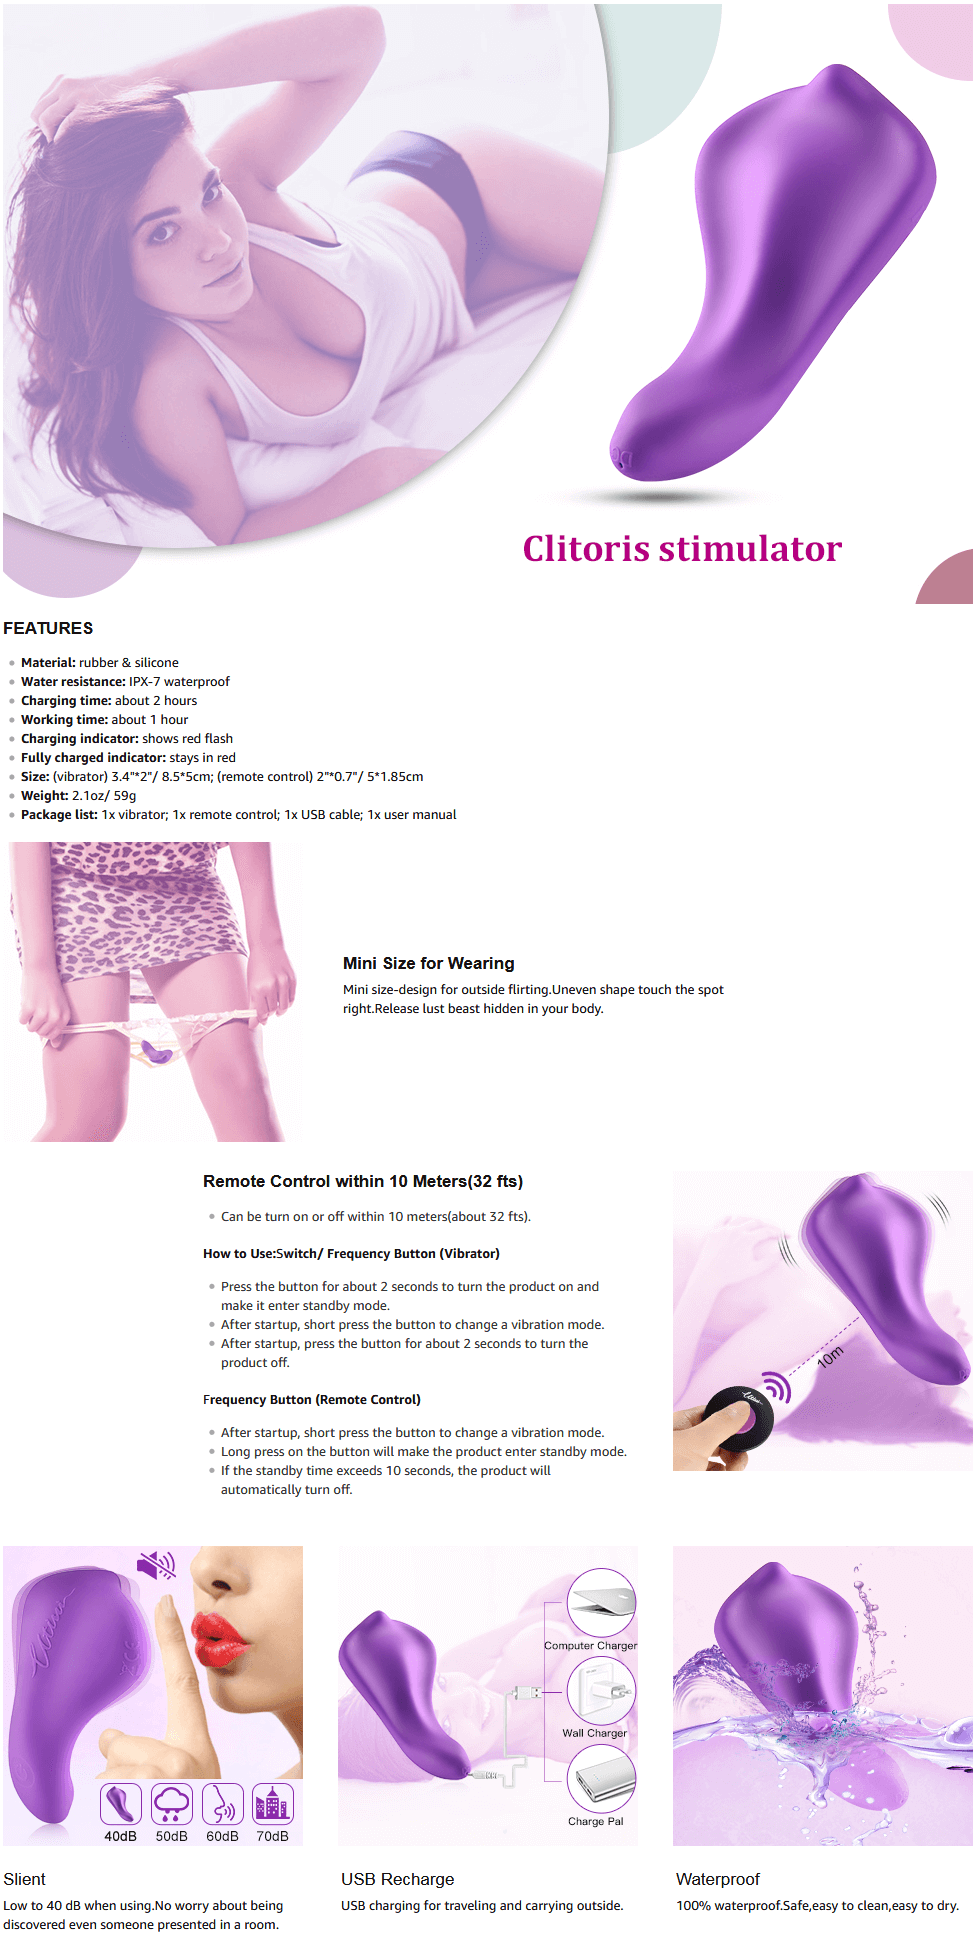 Utimi-Powerful-Vibrator-Rechargeable-Clitoris